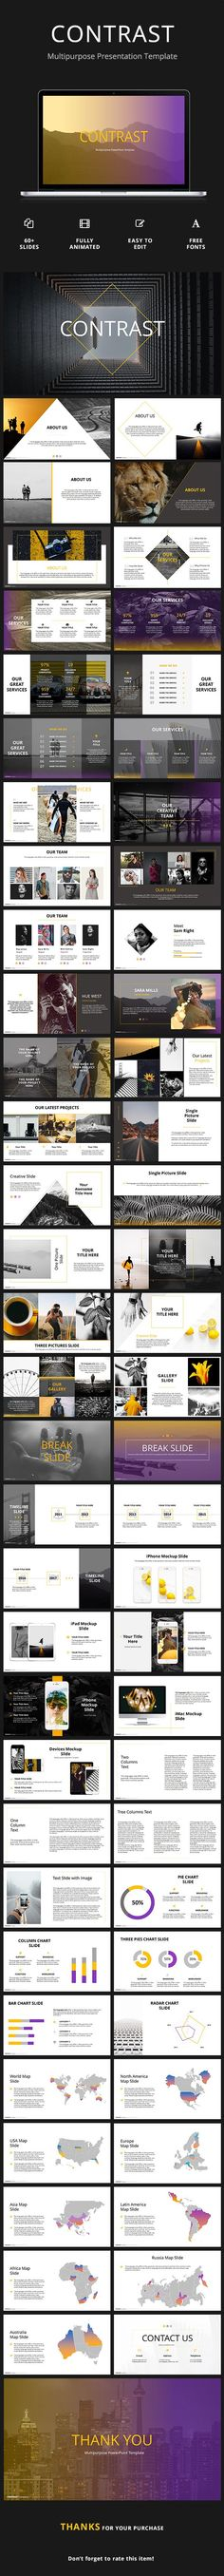 Contrast - Creative Powerpoint Template